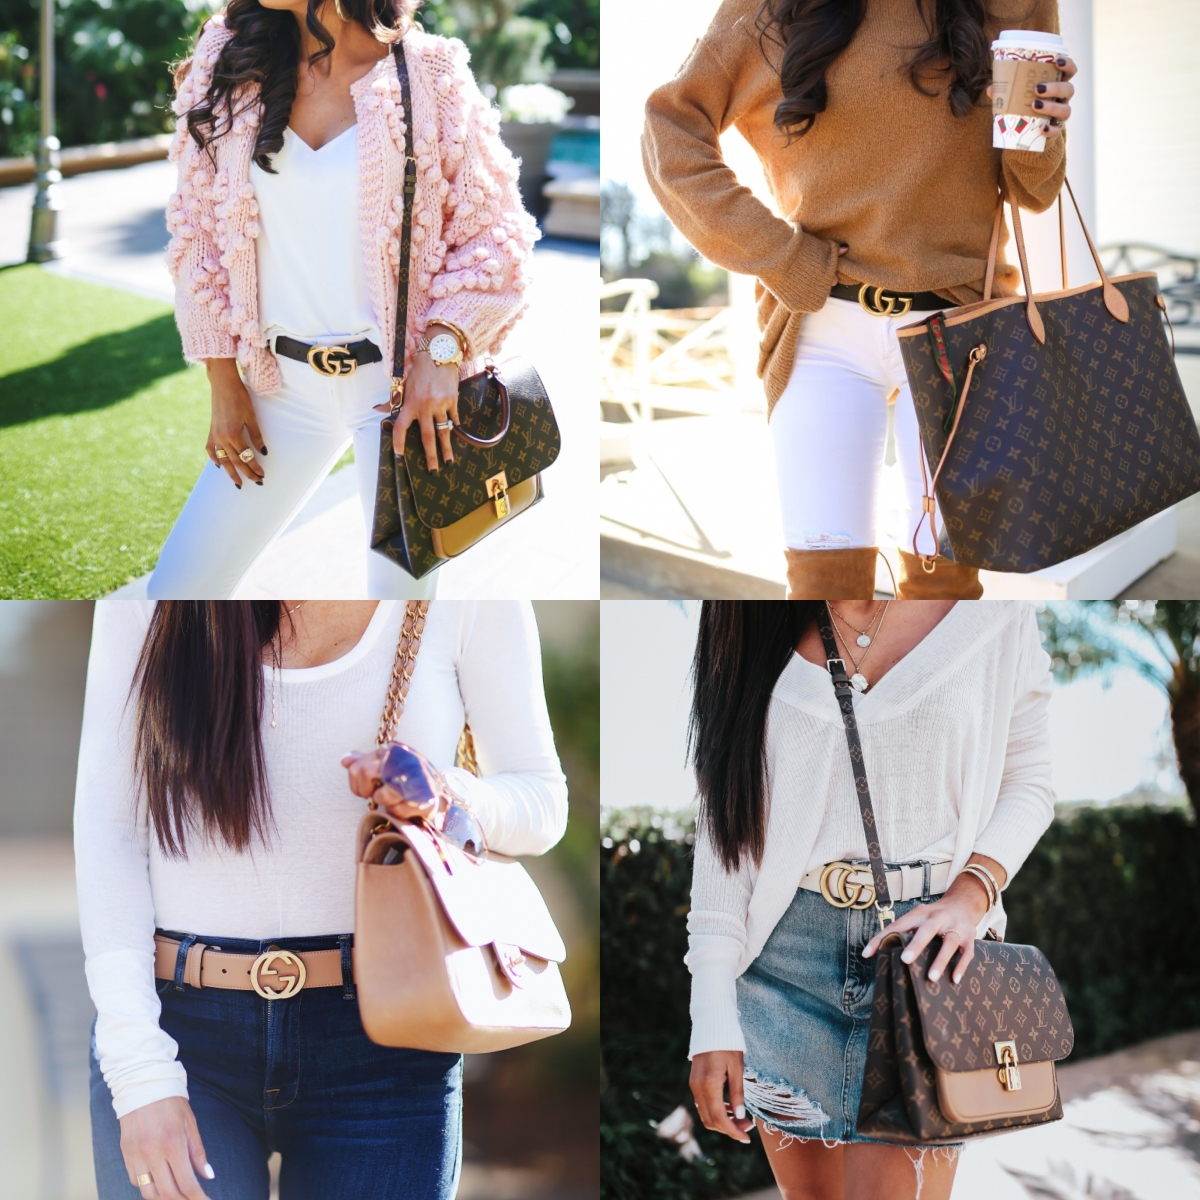 Gucci Belt Sizing by popular US fashion blog, The Sweetest Thing: collage image of a woman wearing a Gucci belt.